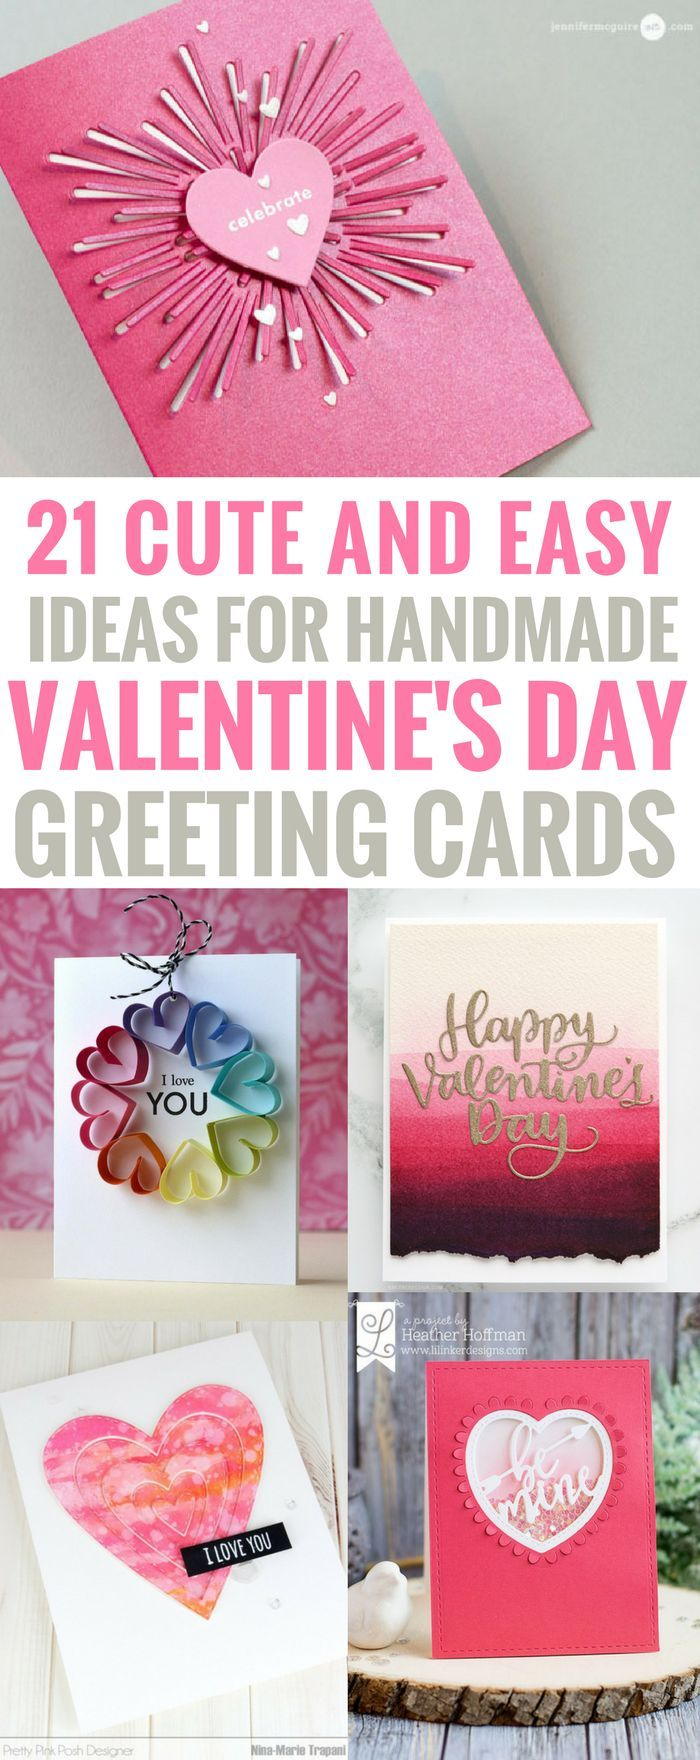 f39341aa756171046905d06f558288f5 - #Valentinesday #papercrafts #greetingcard DIY Valentines Day Cards - Easy Handma...